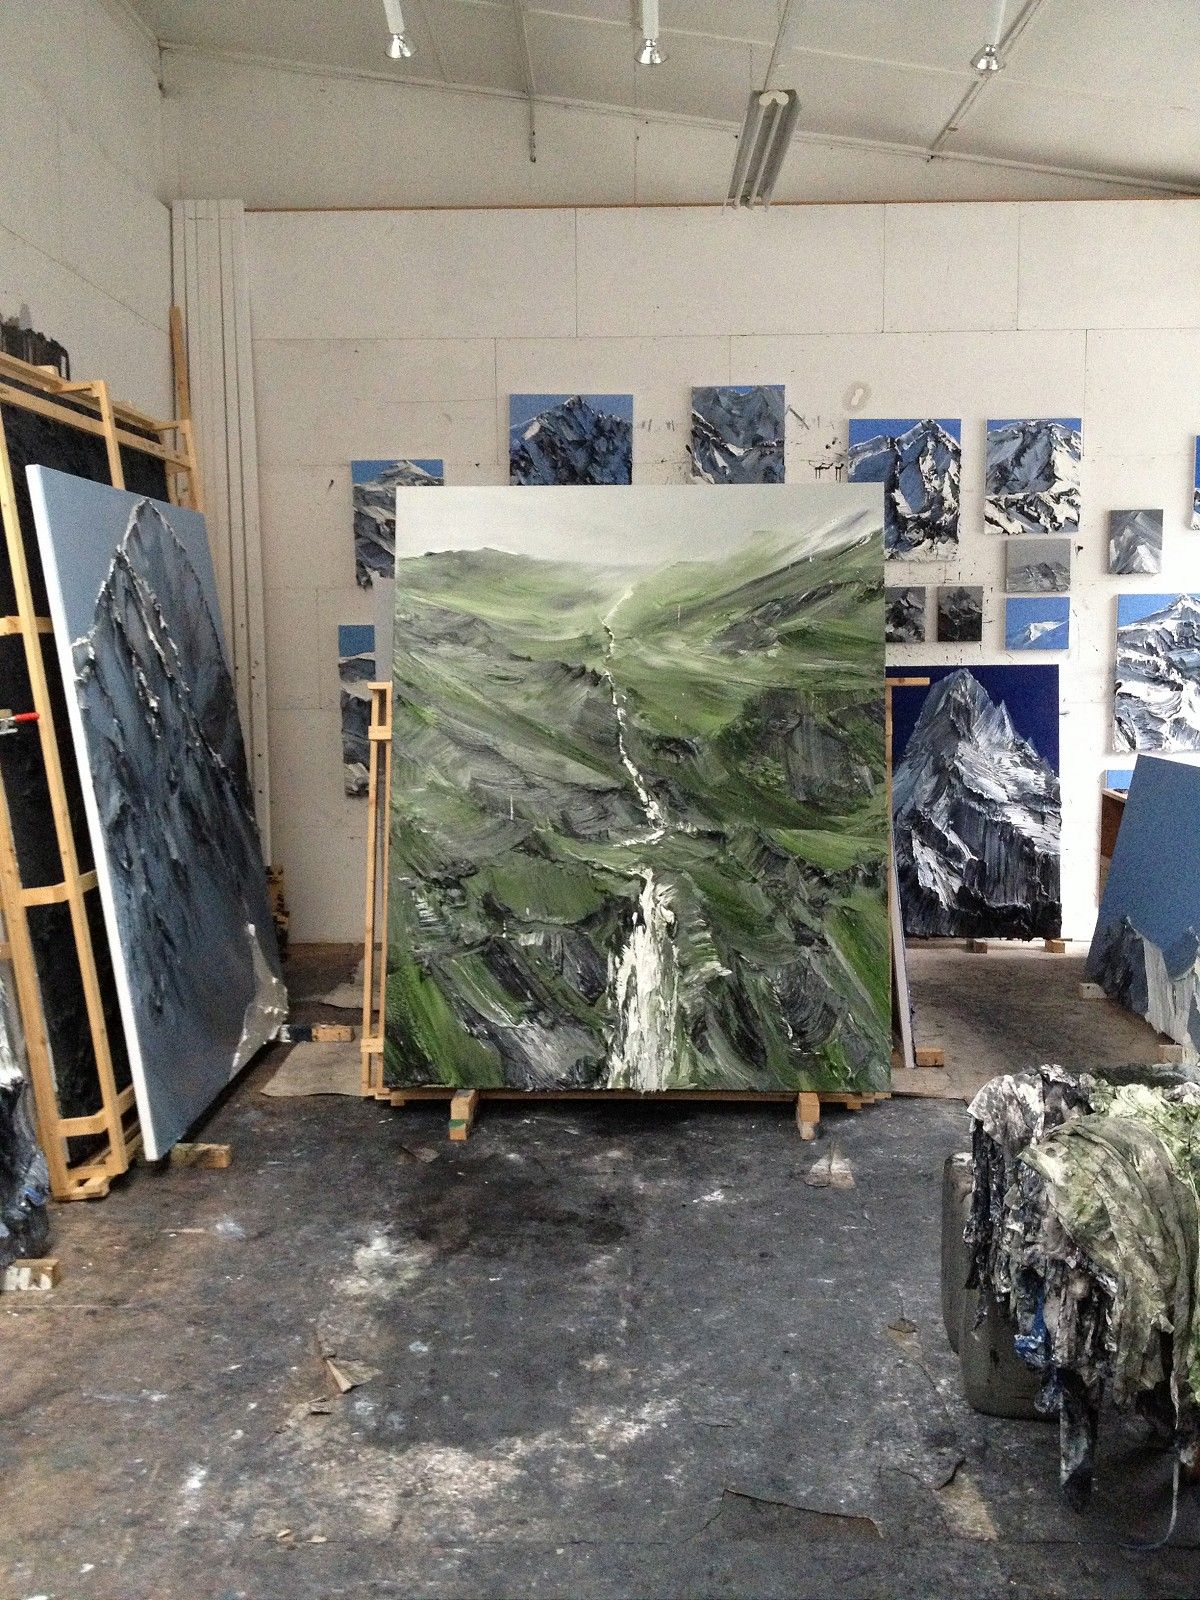 A Studio Visit With Conrad Jon Godly and His Majestic Mountain ...